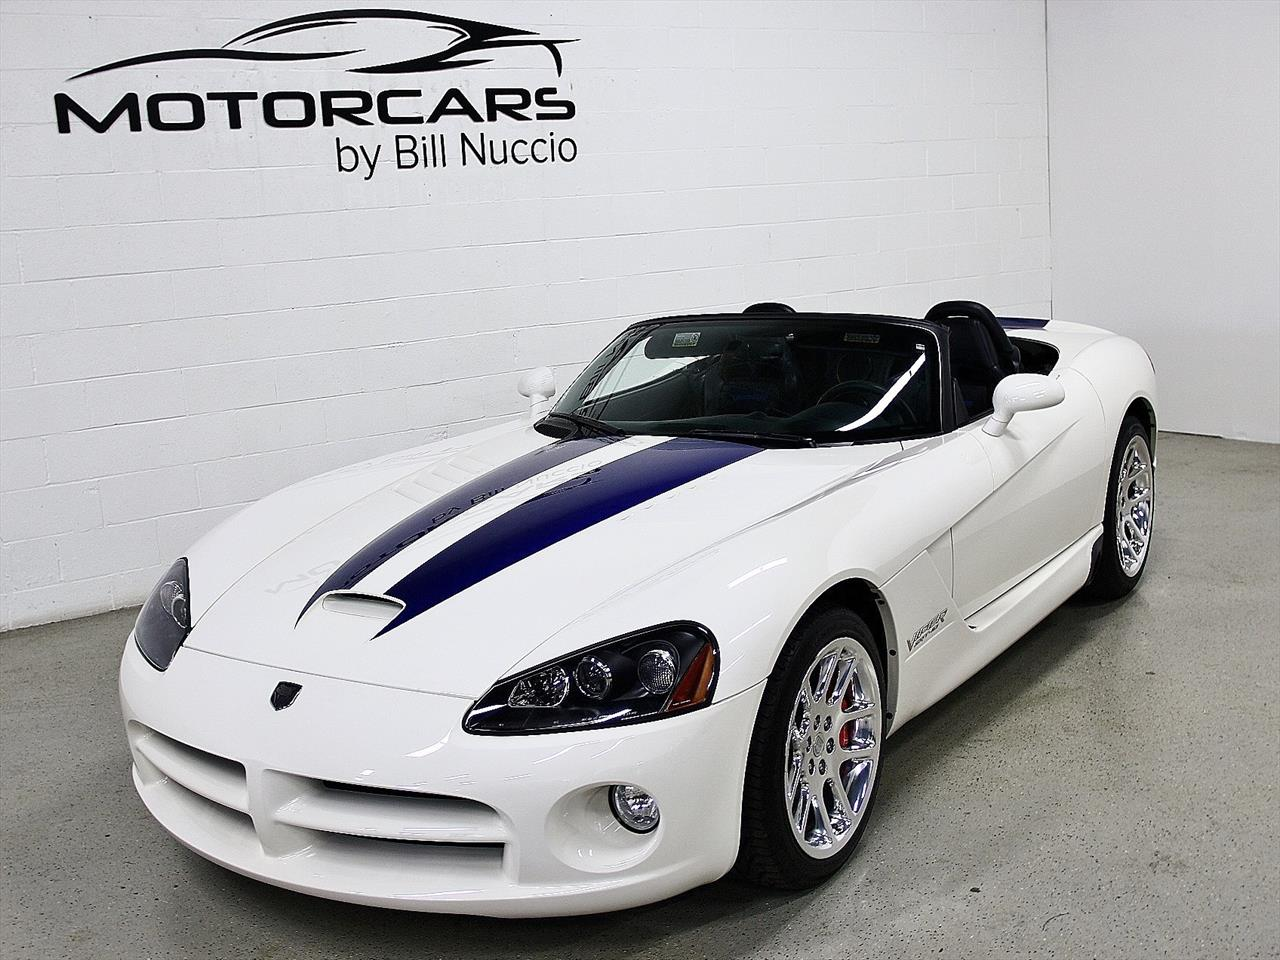 2005 Dodge Viper SRT 10 Convertible Commemorative Edition